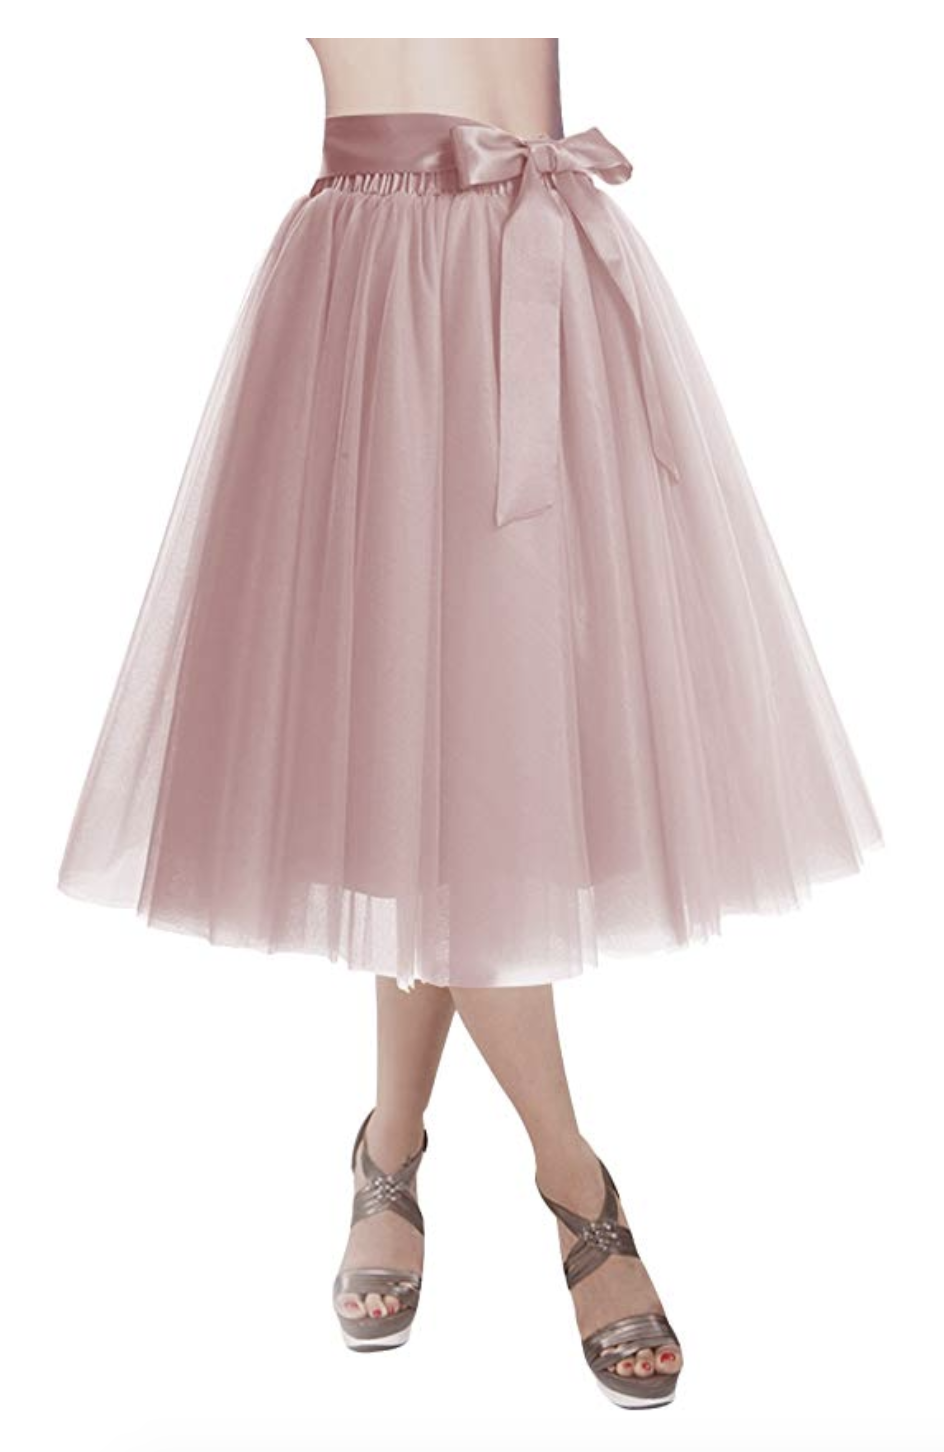 6 Best Tips and Ideas on How to Wear Tulle Skirt Outfits 18